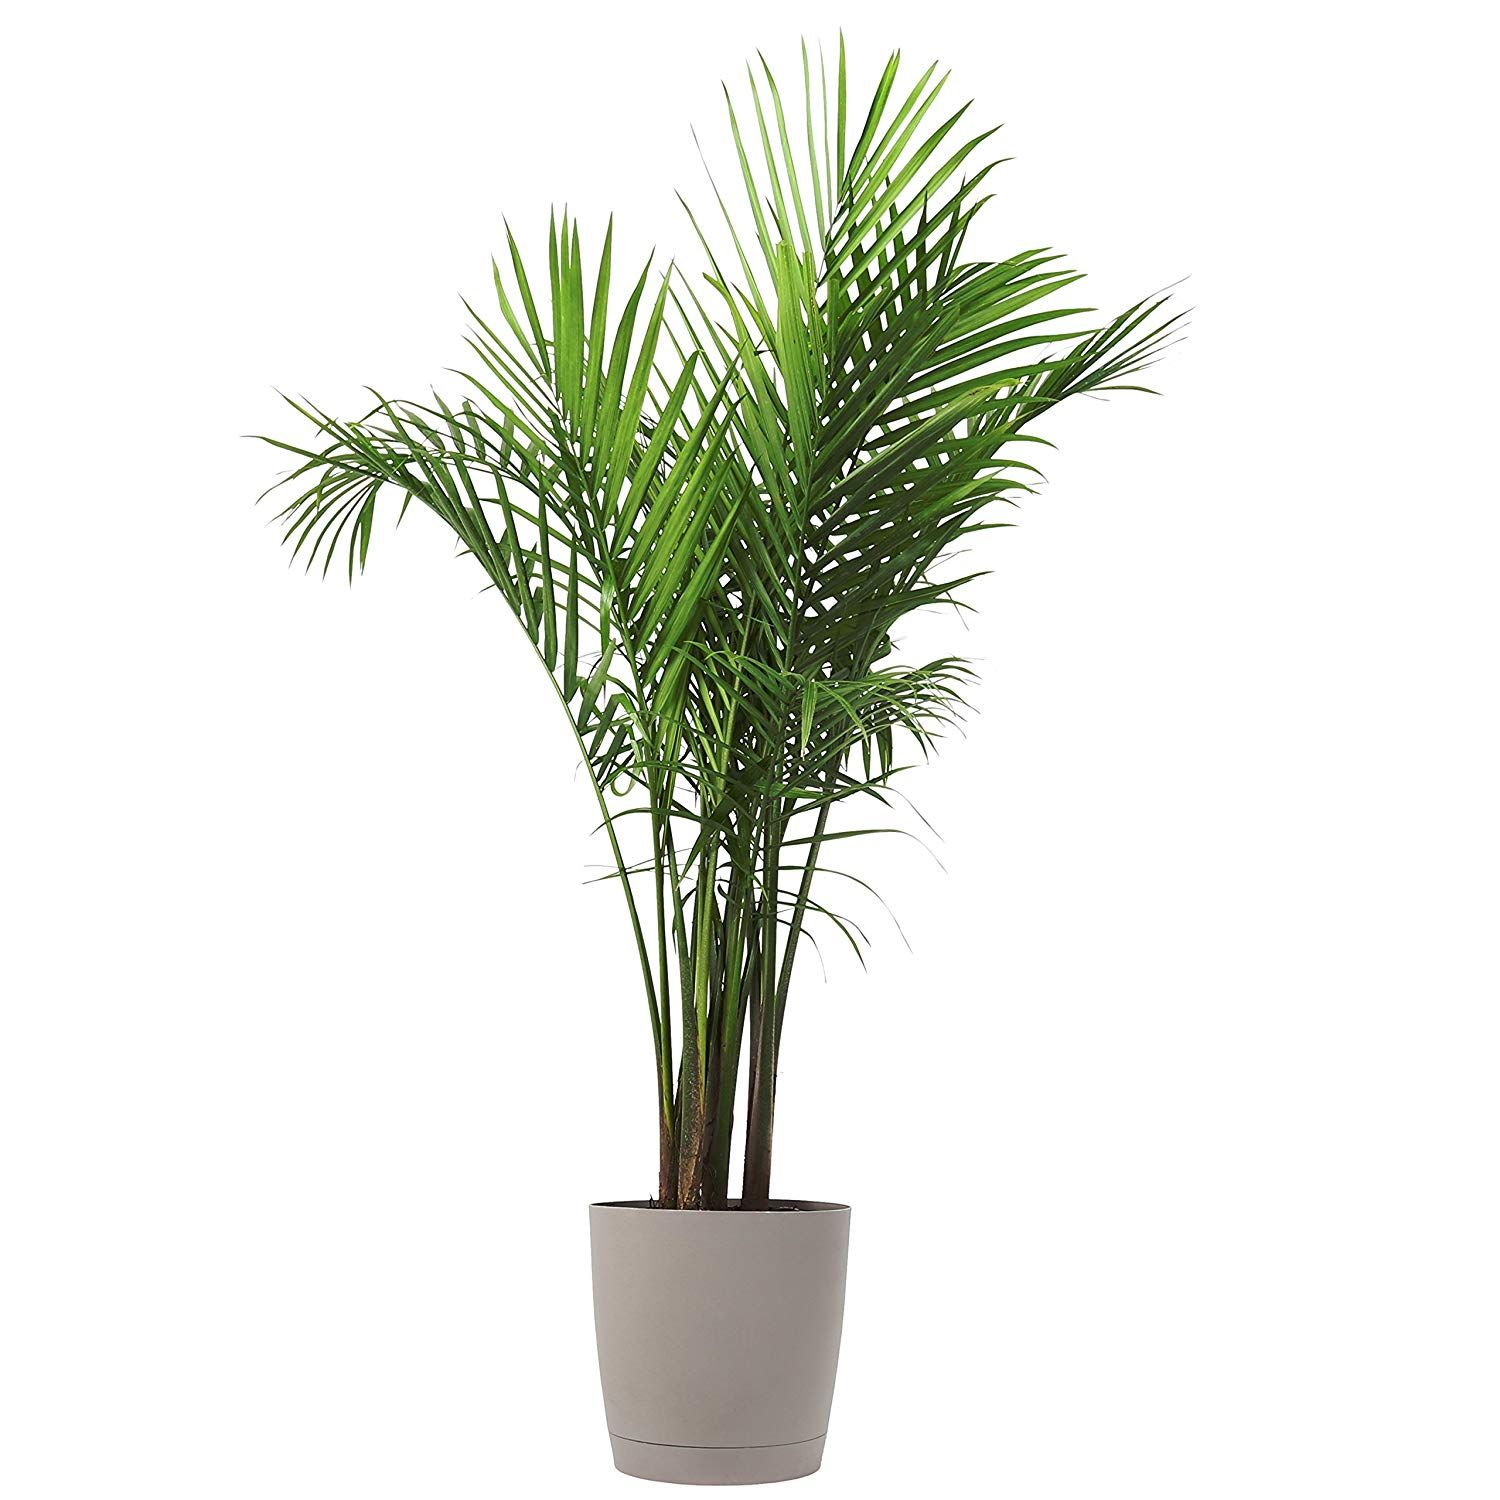 10 Great Budget Sources For Buying Plants Online Indoor Palm